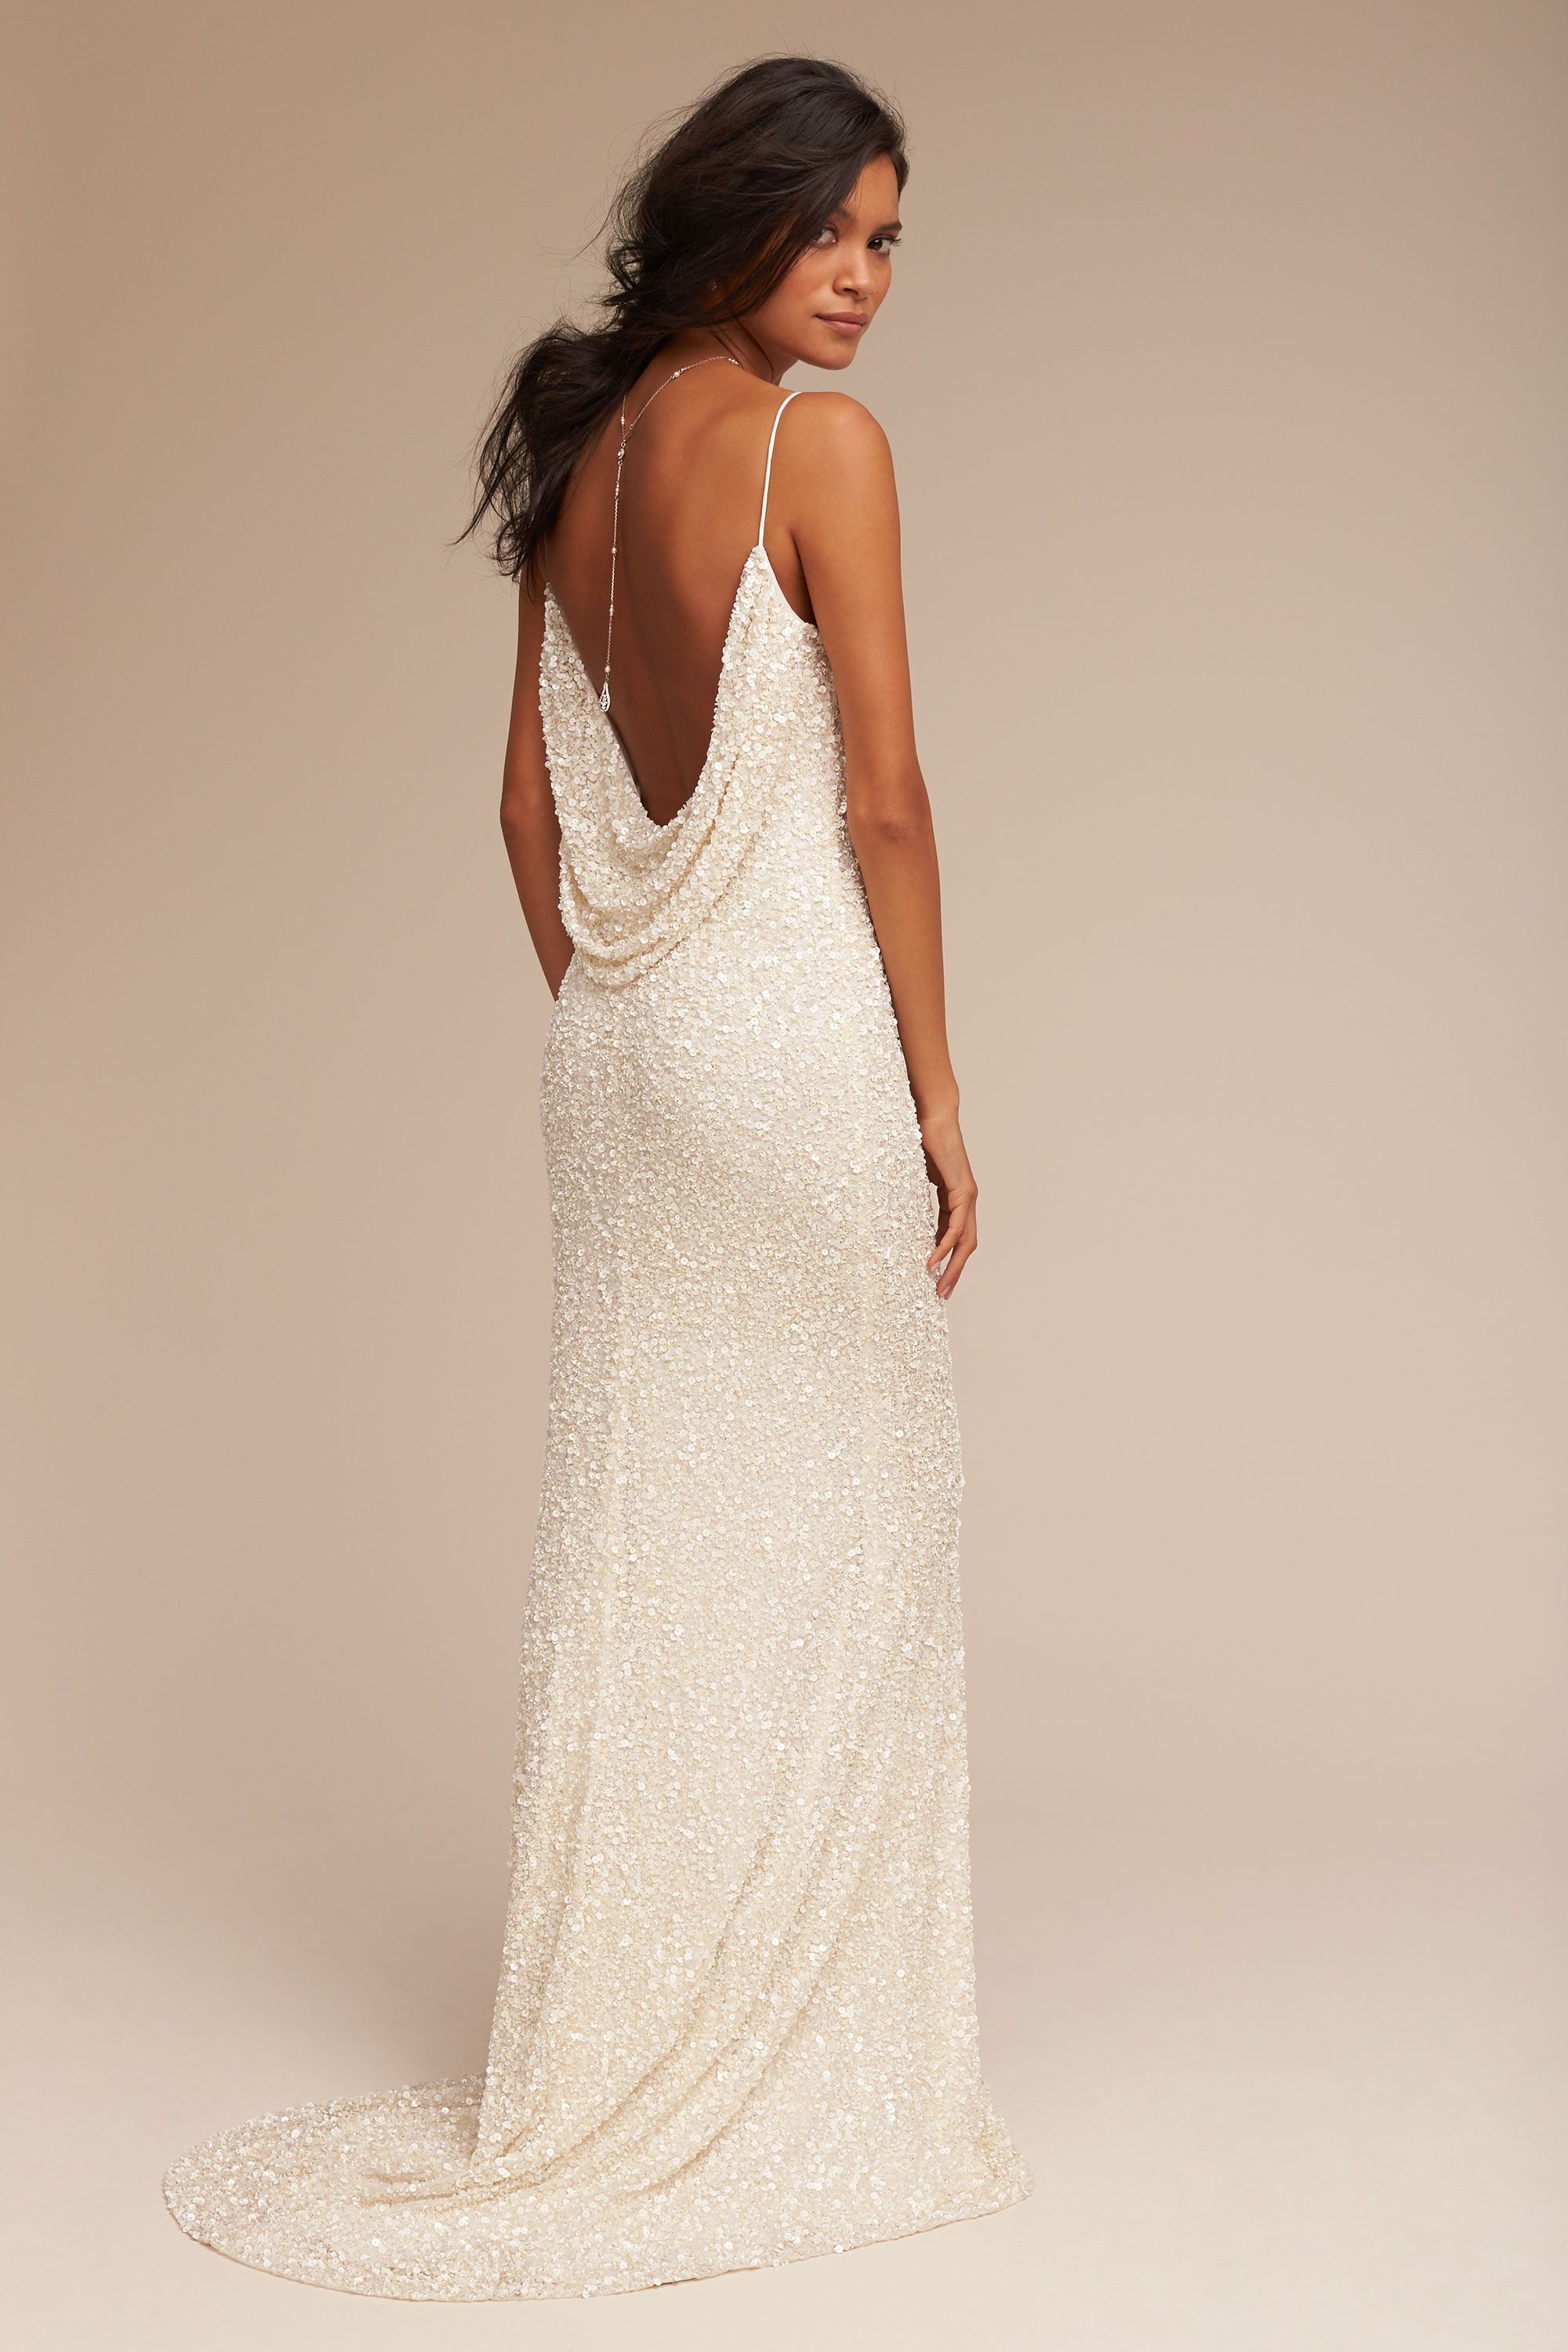 Dreamy BHLDN Wedding Dresses - Natalia Gown